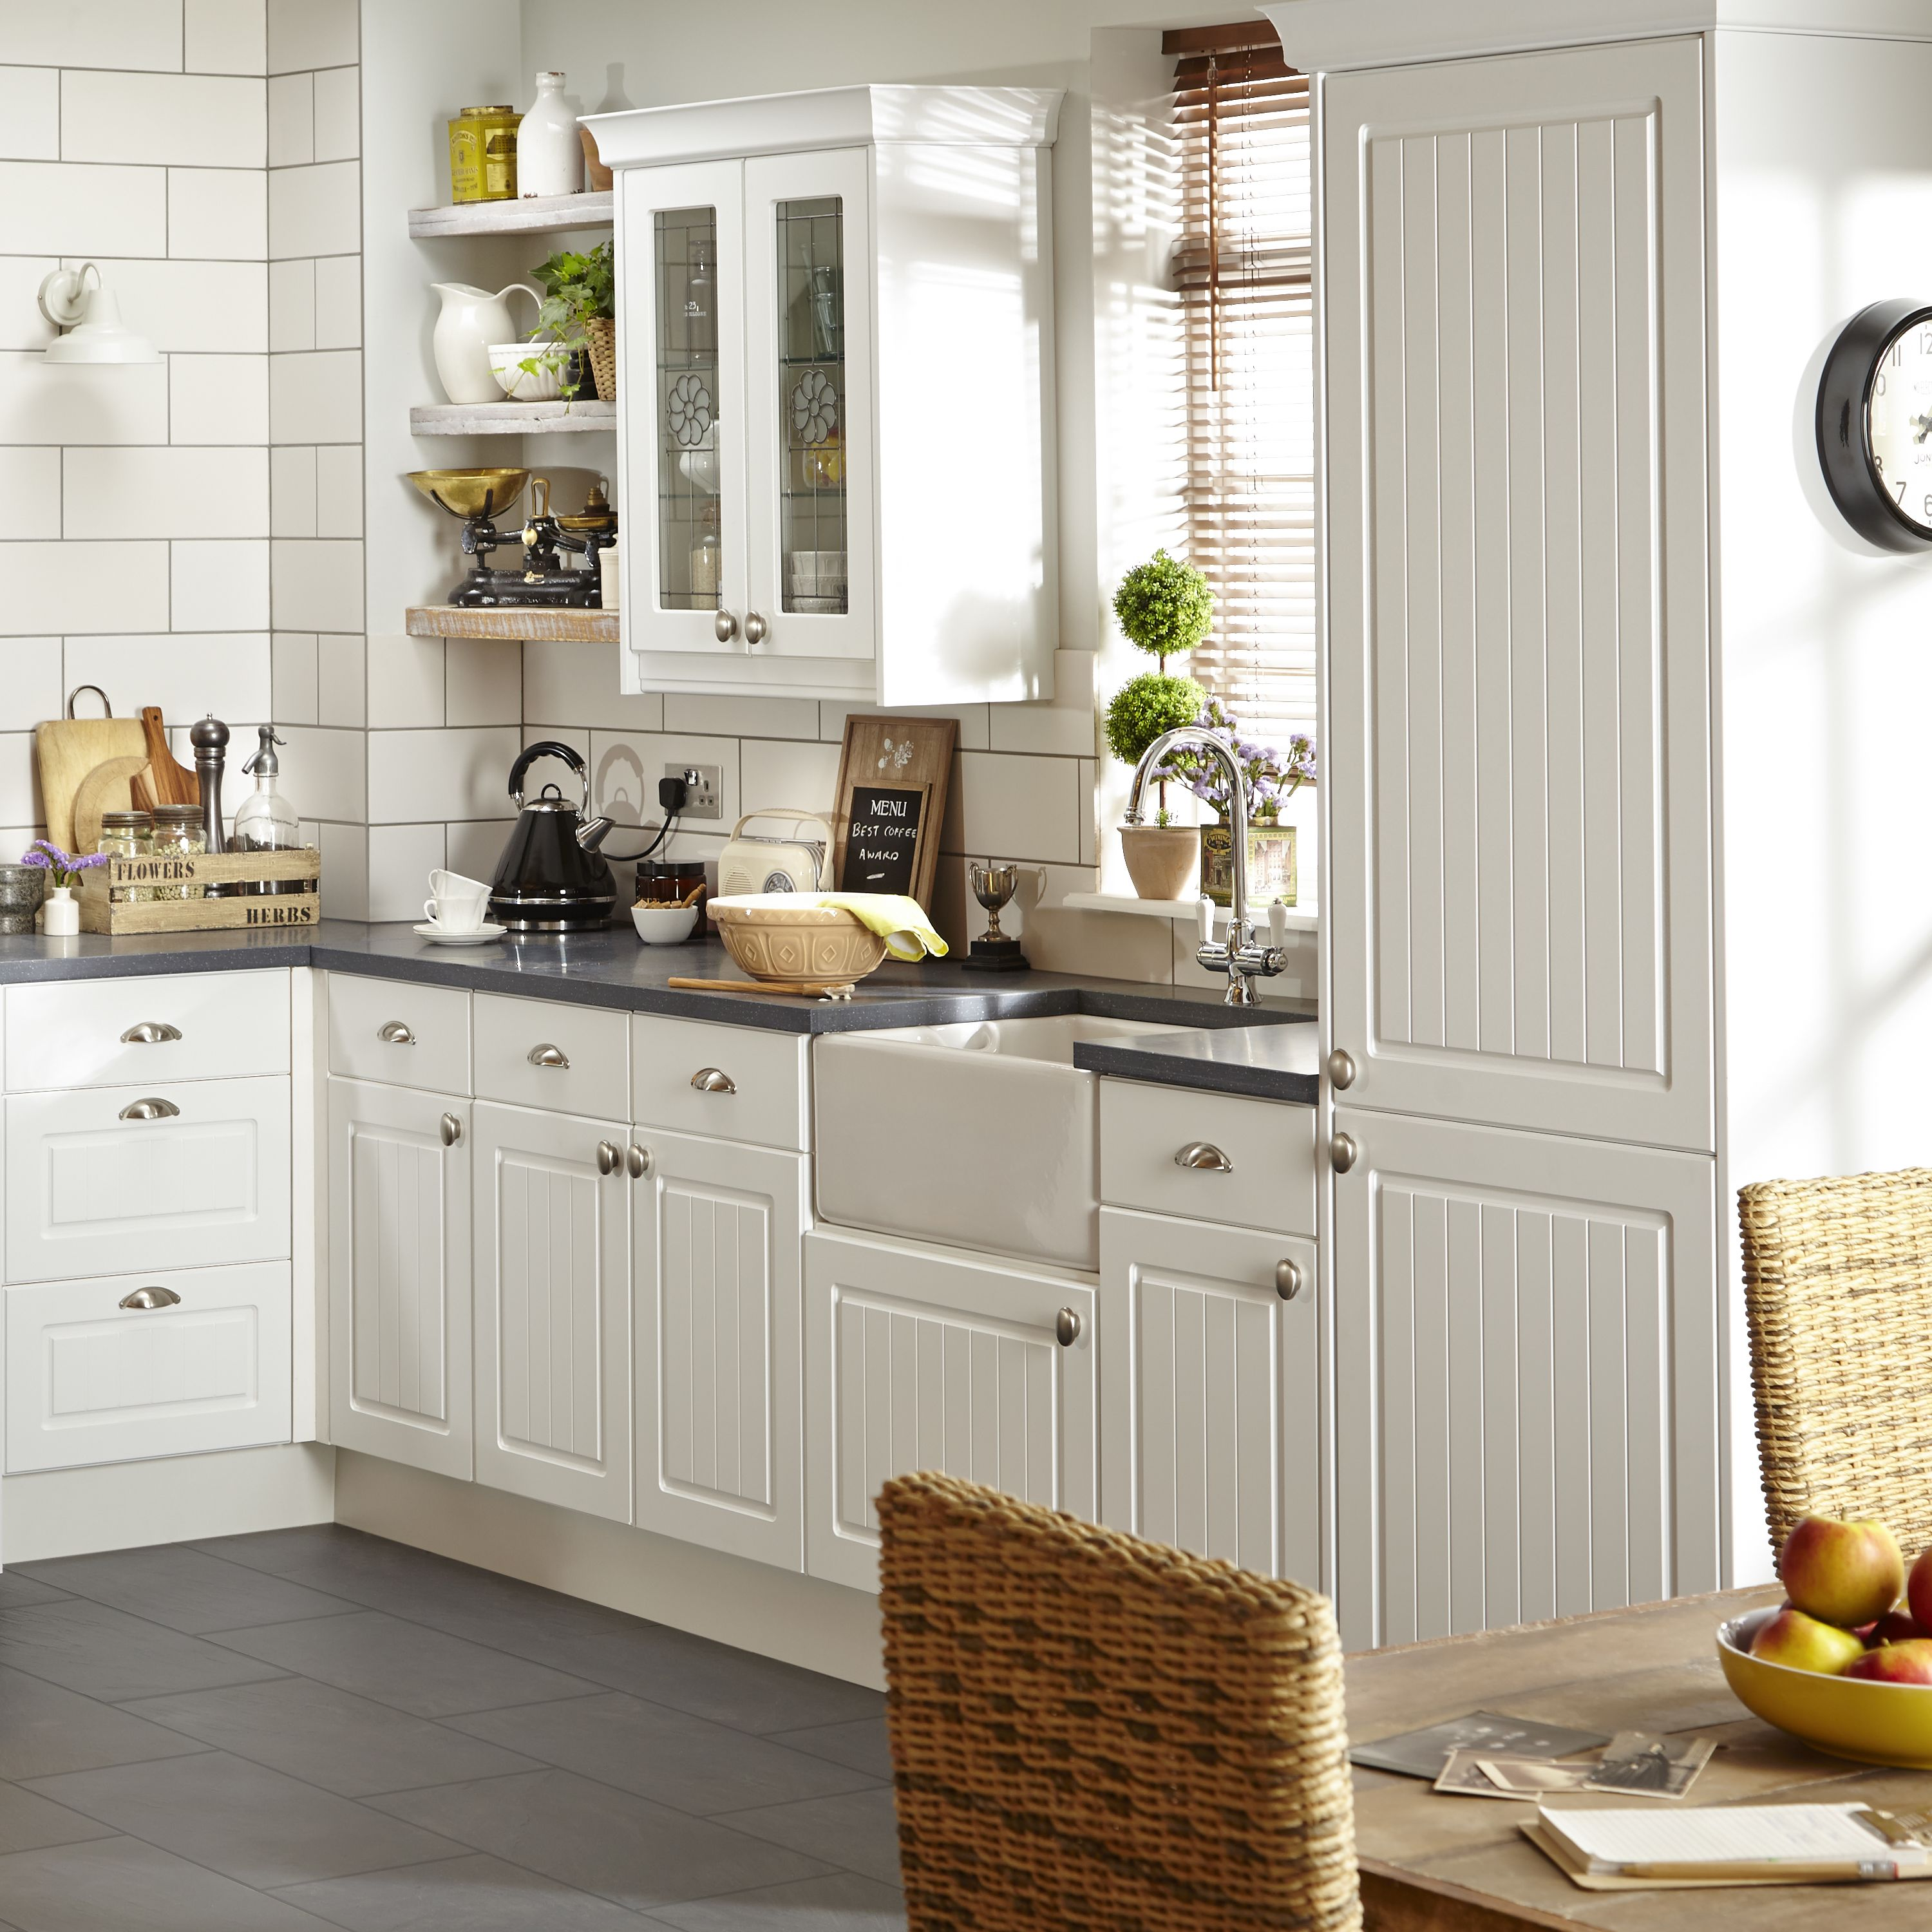 Kitchen Cabinets Vintage Style: Vintage Kitchen Design Ideas